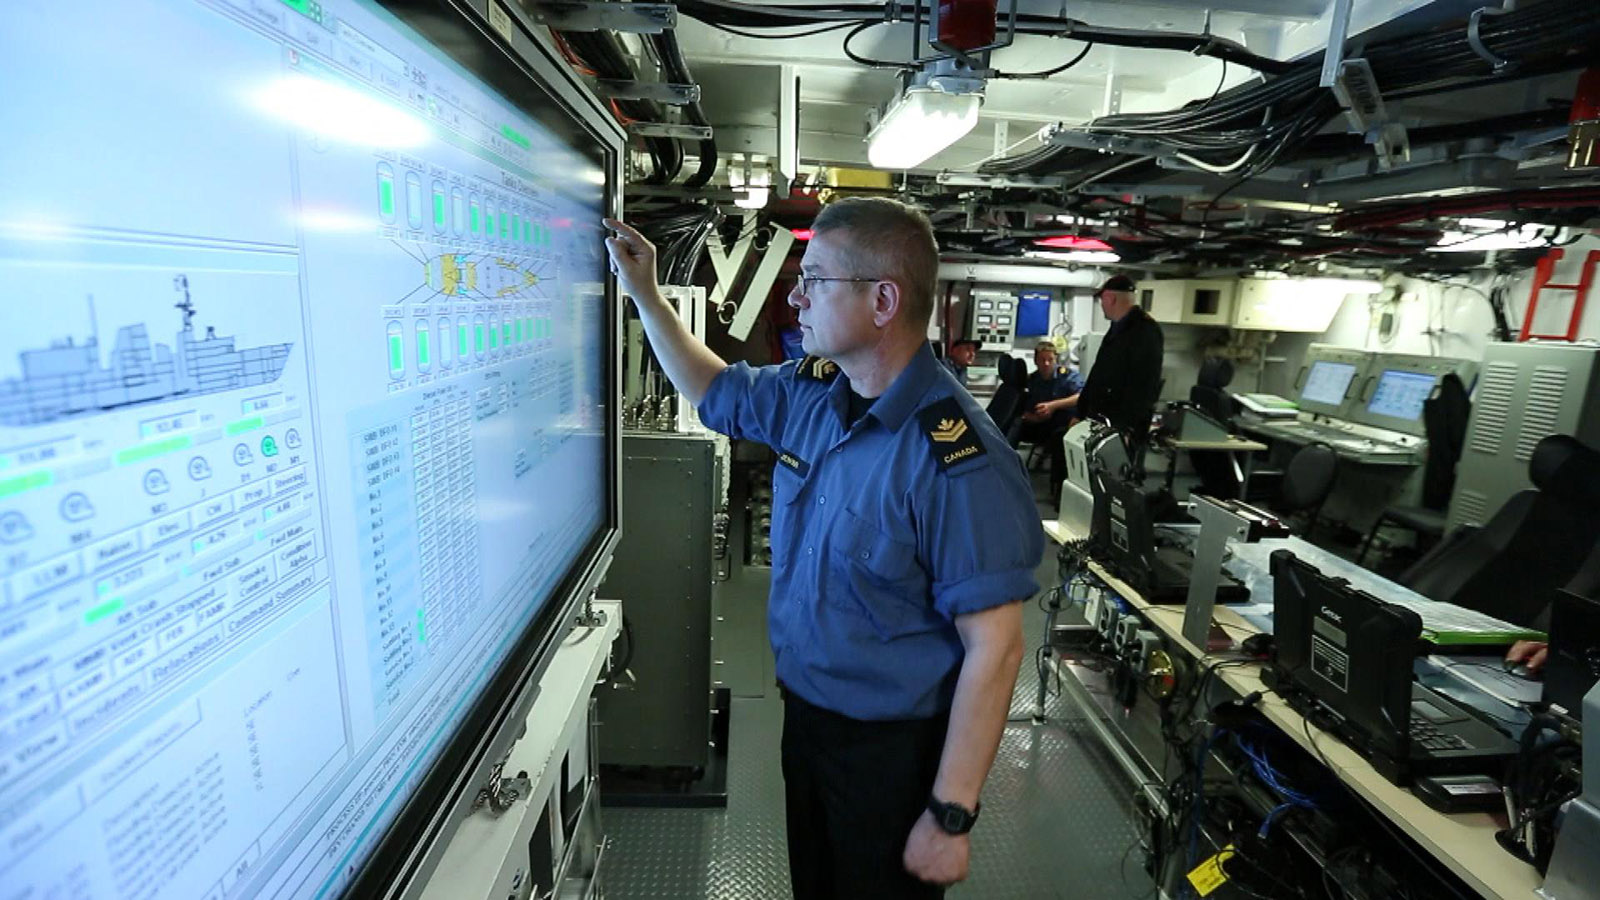 A Royal Canadian Navy Sailor monitors the ship's systems in the machinery control room.